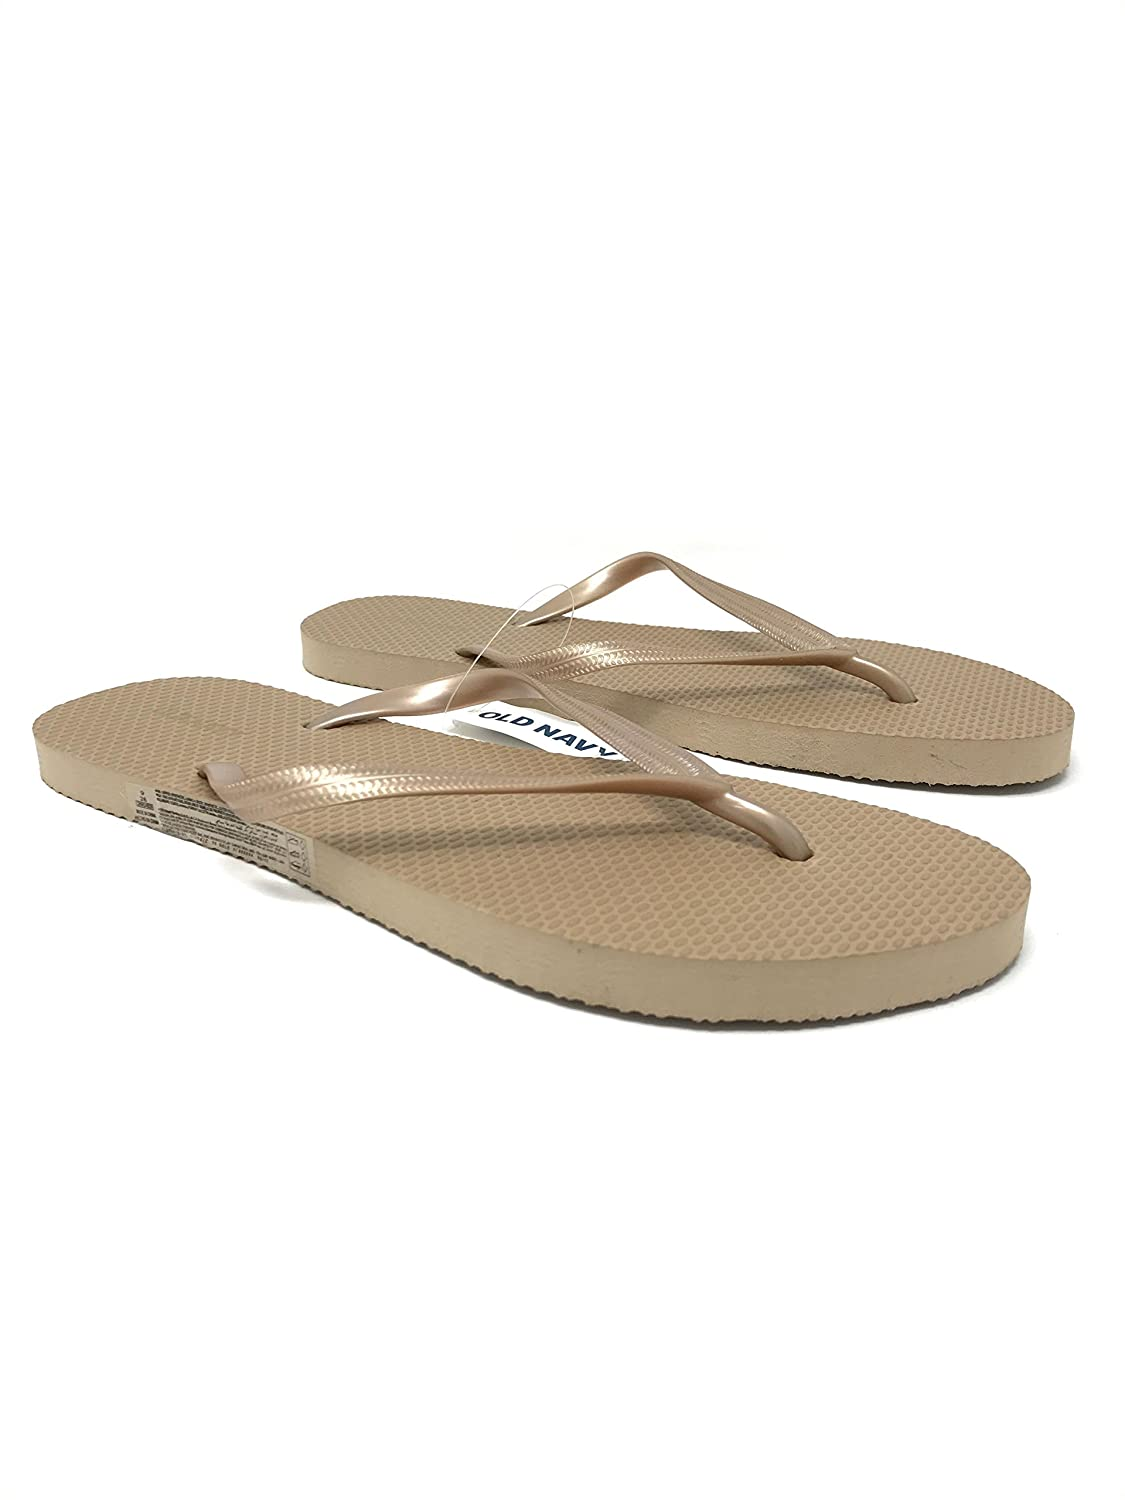 Amazon.com: Old Navy Flip Flop Sandals for Woman, Great for Beach or ...